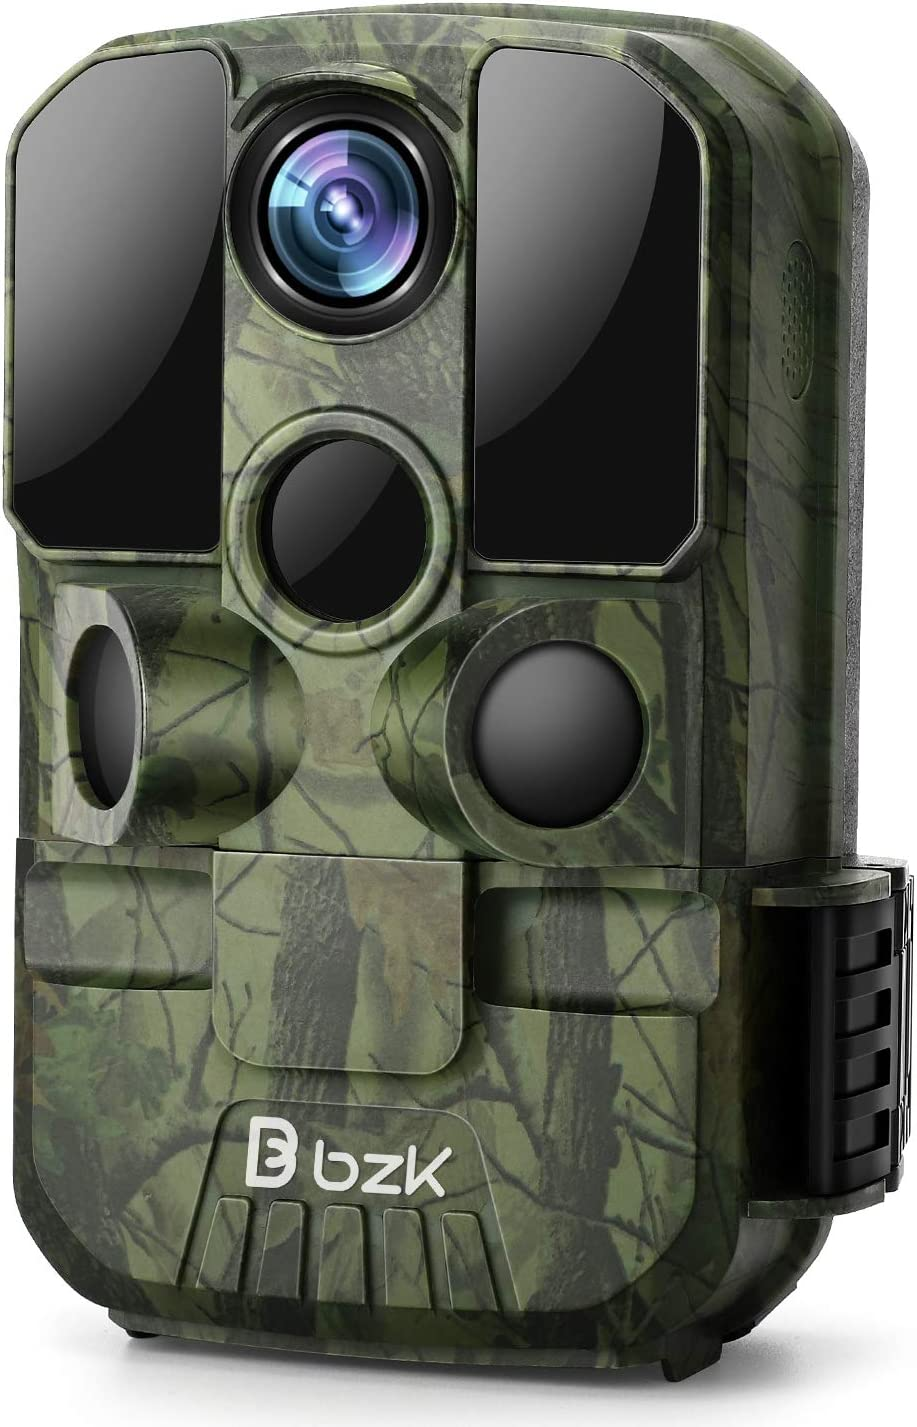 BZK Trail Game Camera - 20MP 1080P HD Waterproof Hunting Cam with Motion Activated Night Vision and 120° Wide Angle Lens for Outdoor Scouting, Wildlife Watching, Farm Monitoring: Electronics